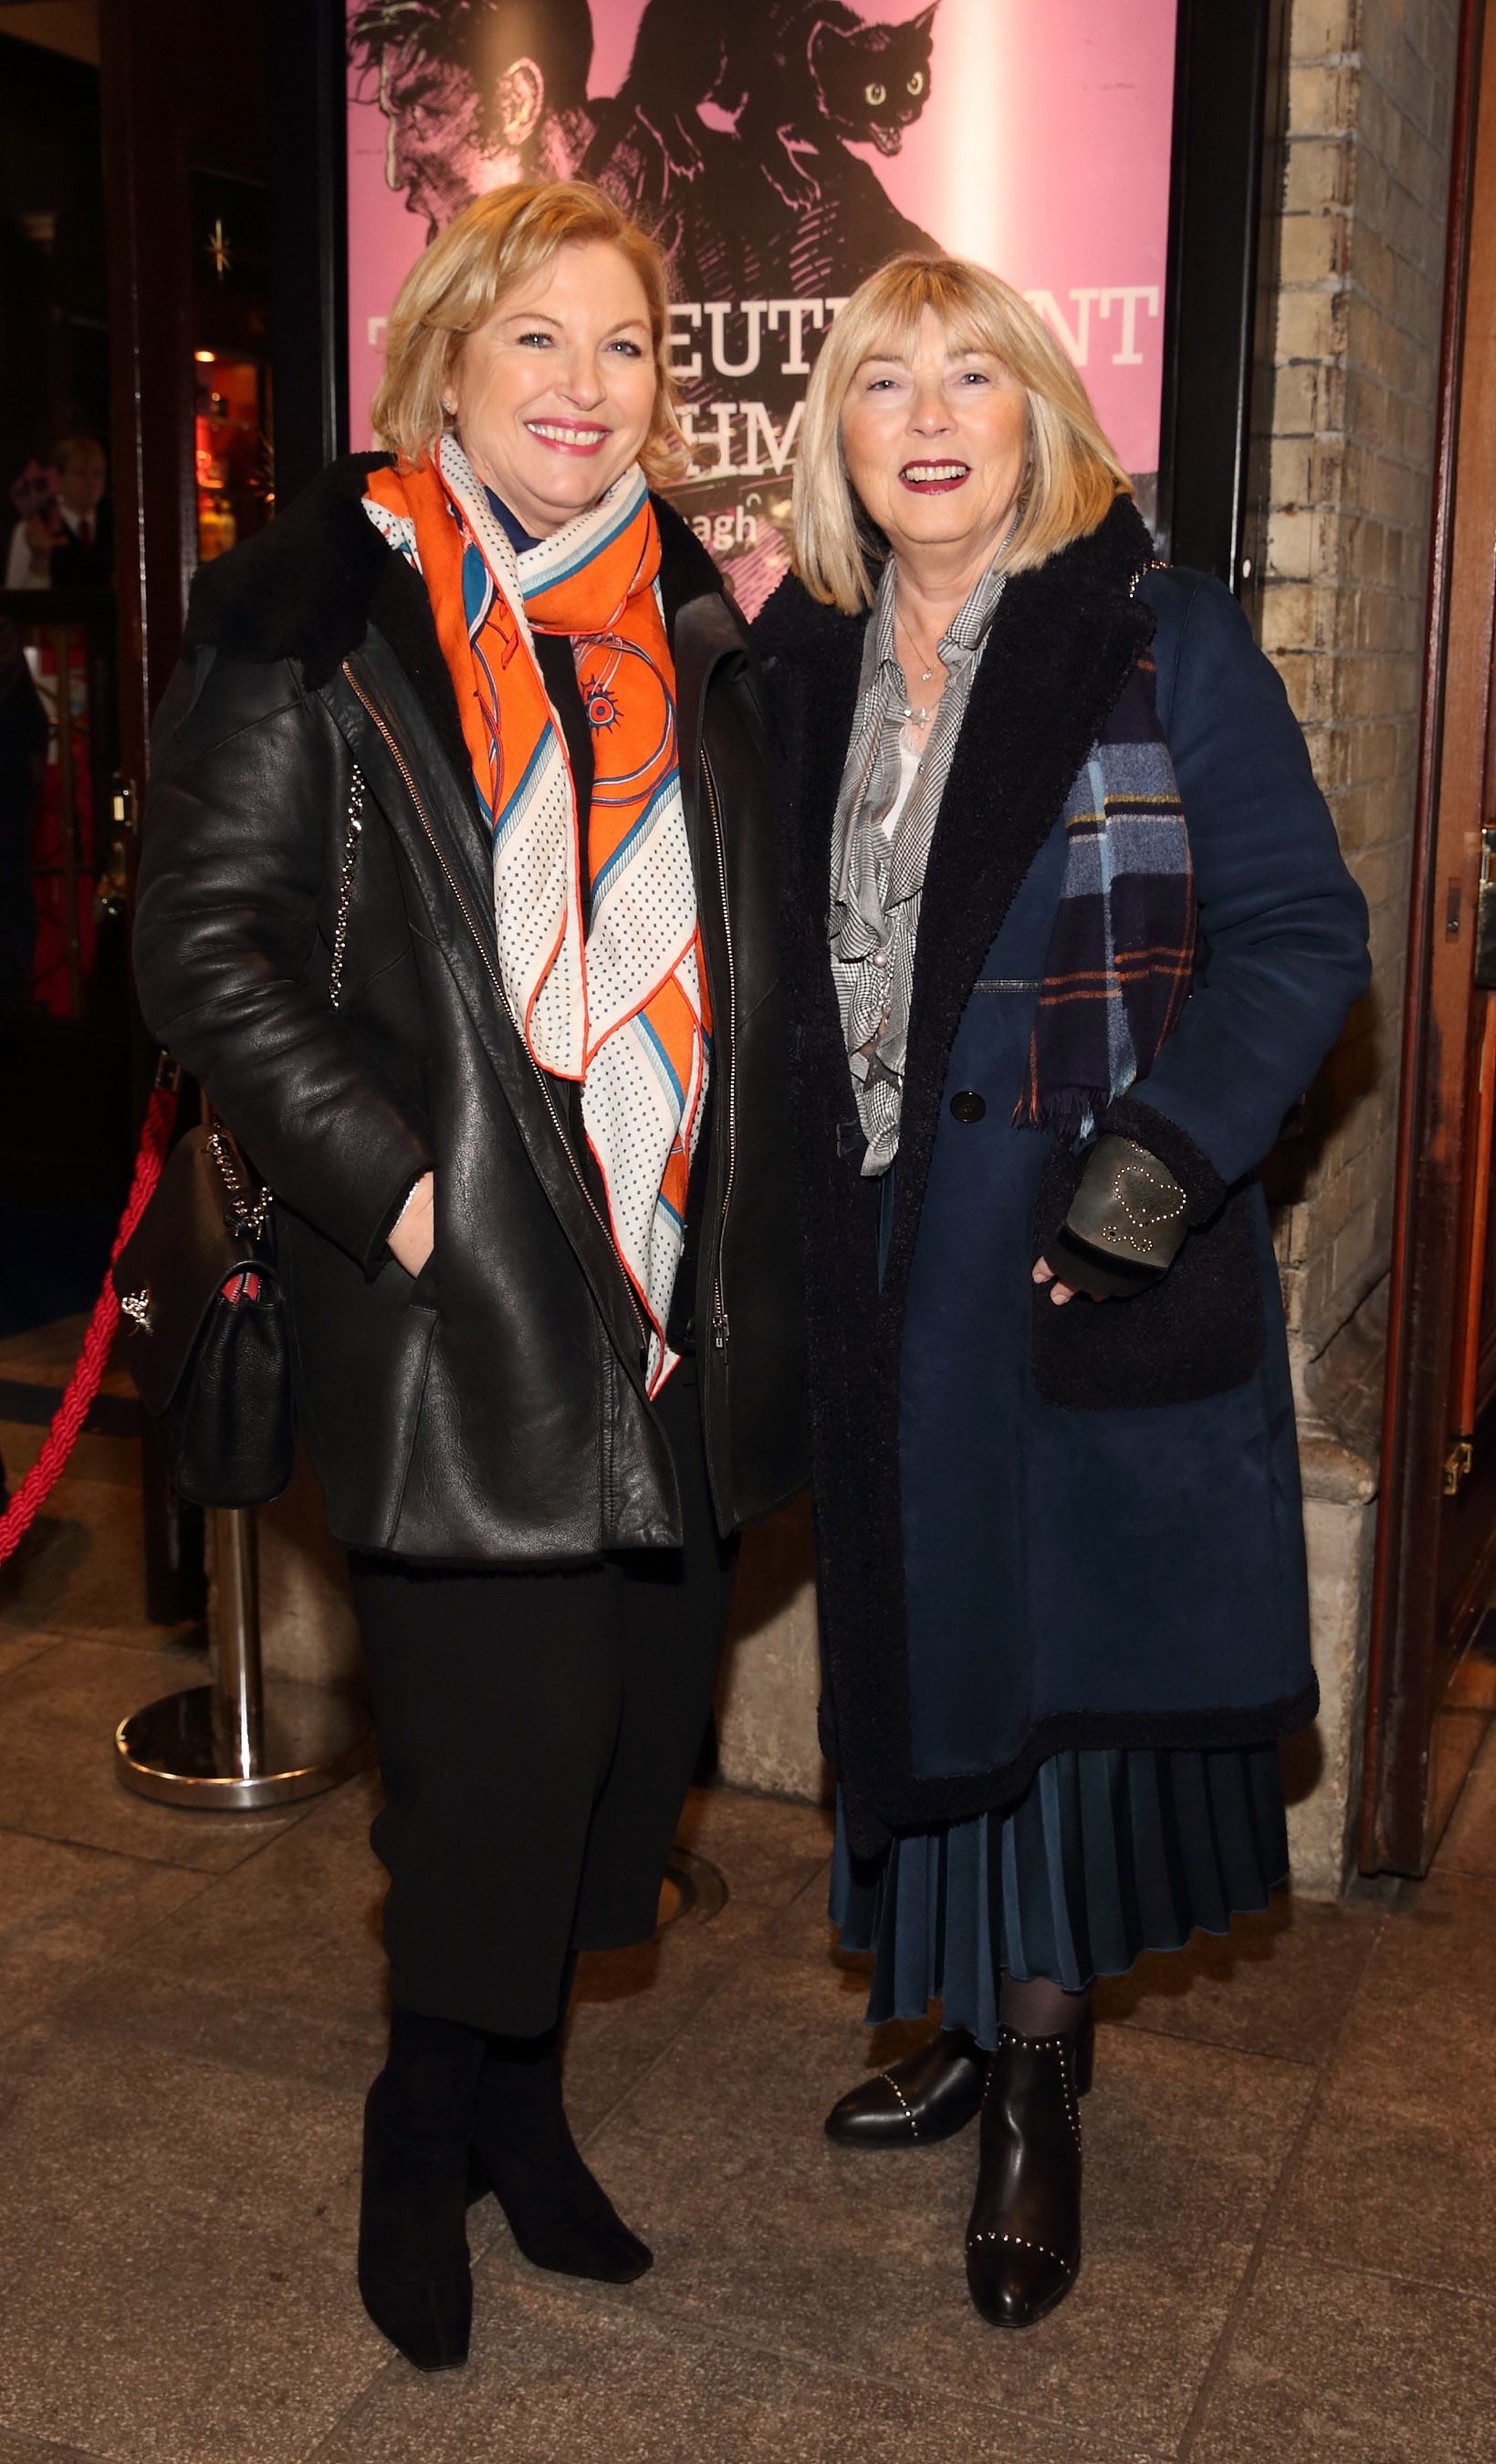 Liz O'Donnell and Mary Ainscough pictured at the opening of the Gaiety Theatre's major new production of Martin McDonagh's 'The Lieutenant of Inishmore', which will run at the Gaiety Theatre until 14th March.